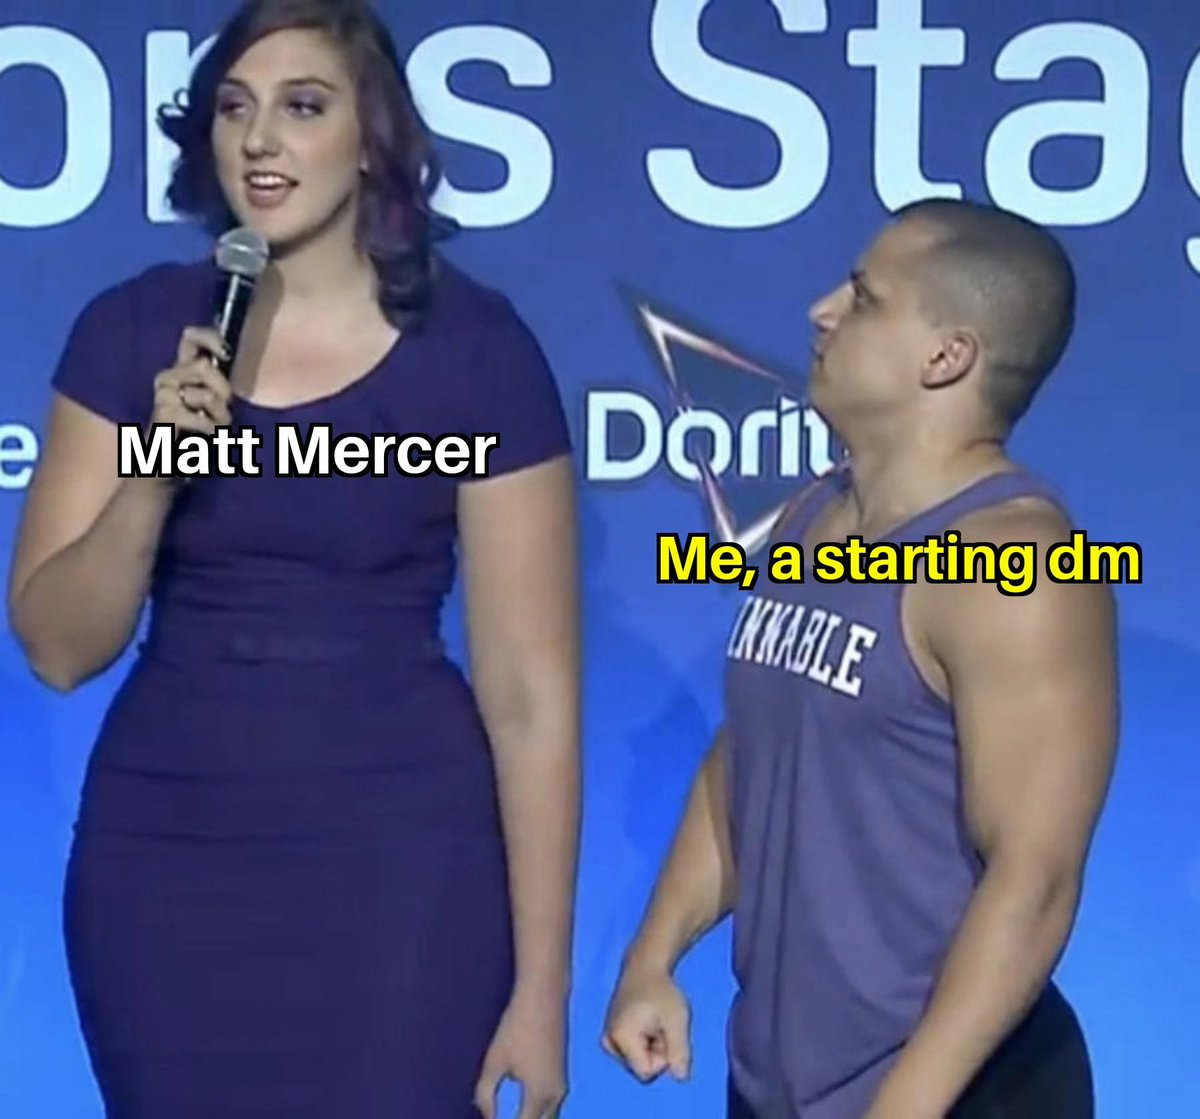 As much as Matthew Mercer is am example for many, he isn't perfect. And that's okay, for me he is a big example in many things and difficult to try to match. Who is your favorite dm? #dungeonsanddragons #mattmercer #CriticalRole #dungeonsanddragons #dndmeme #dndmemes #dnd #dnd5e